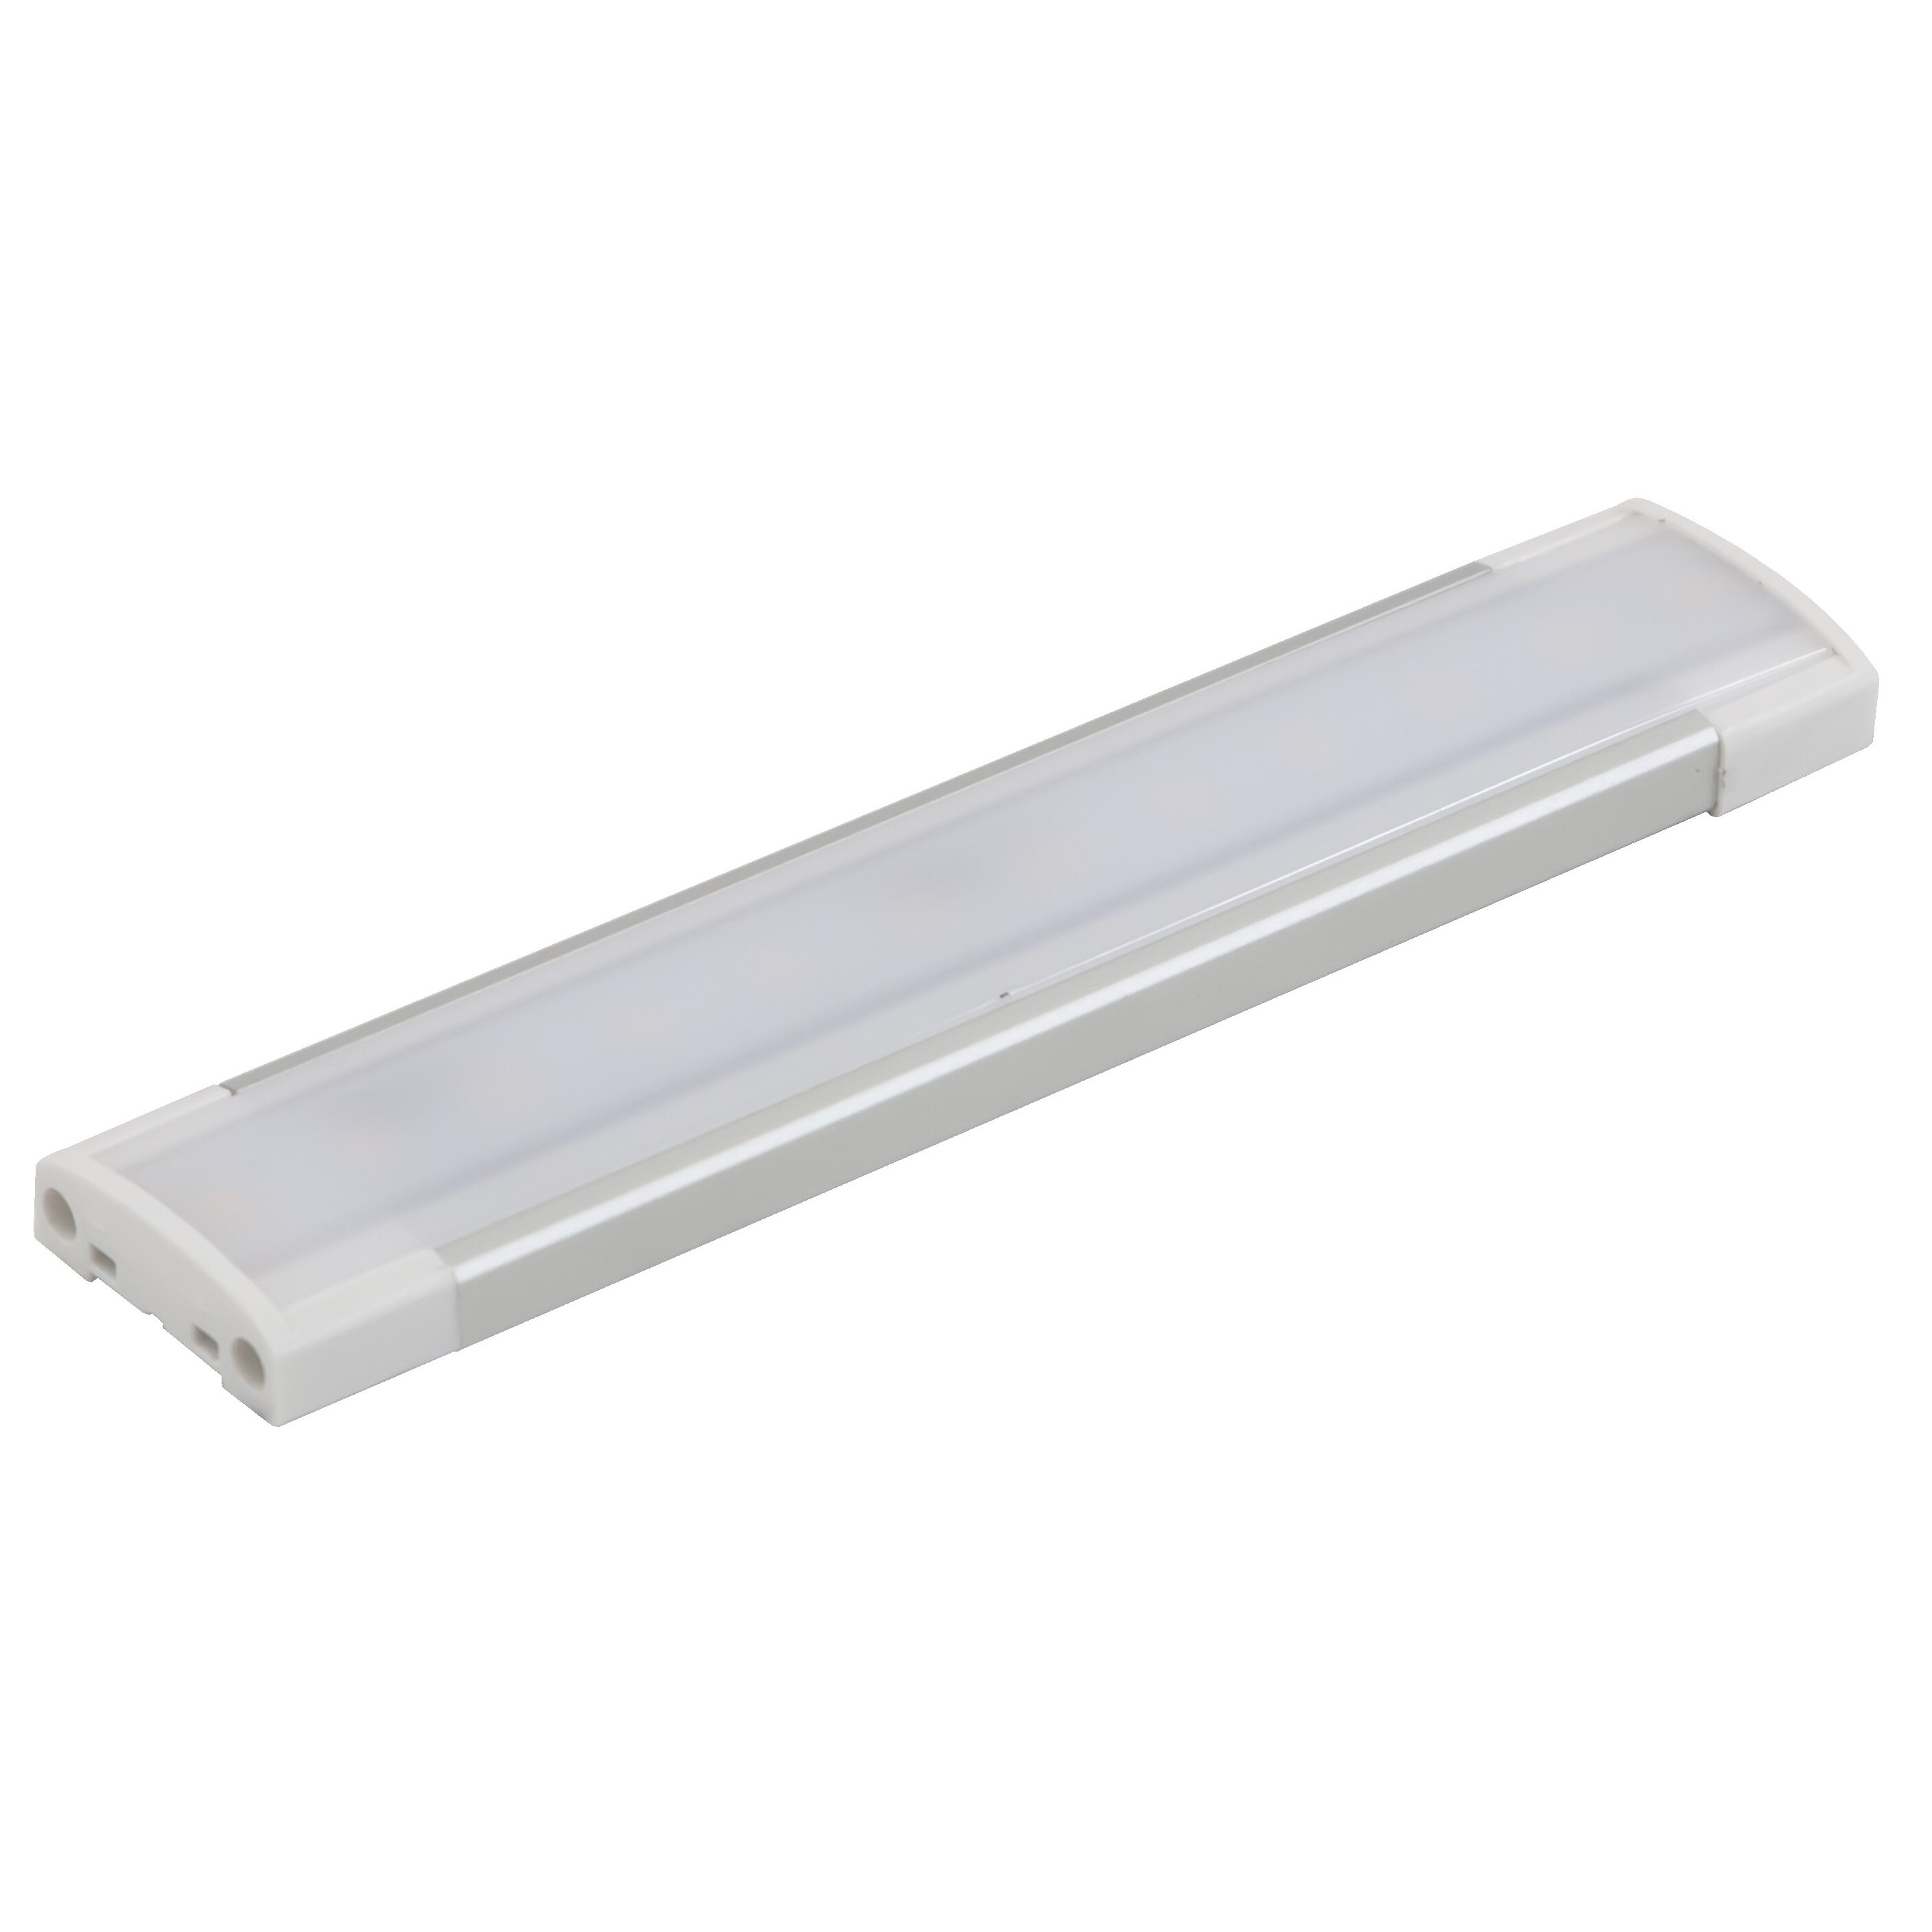 American Lighting LLC LED Ruler 2 With Clips And Joiner Wayfair